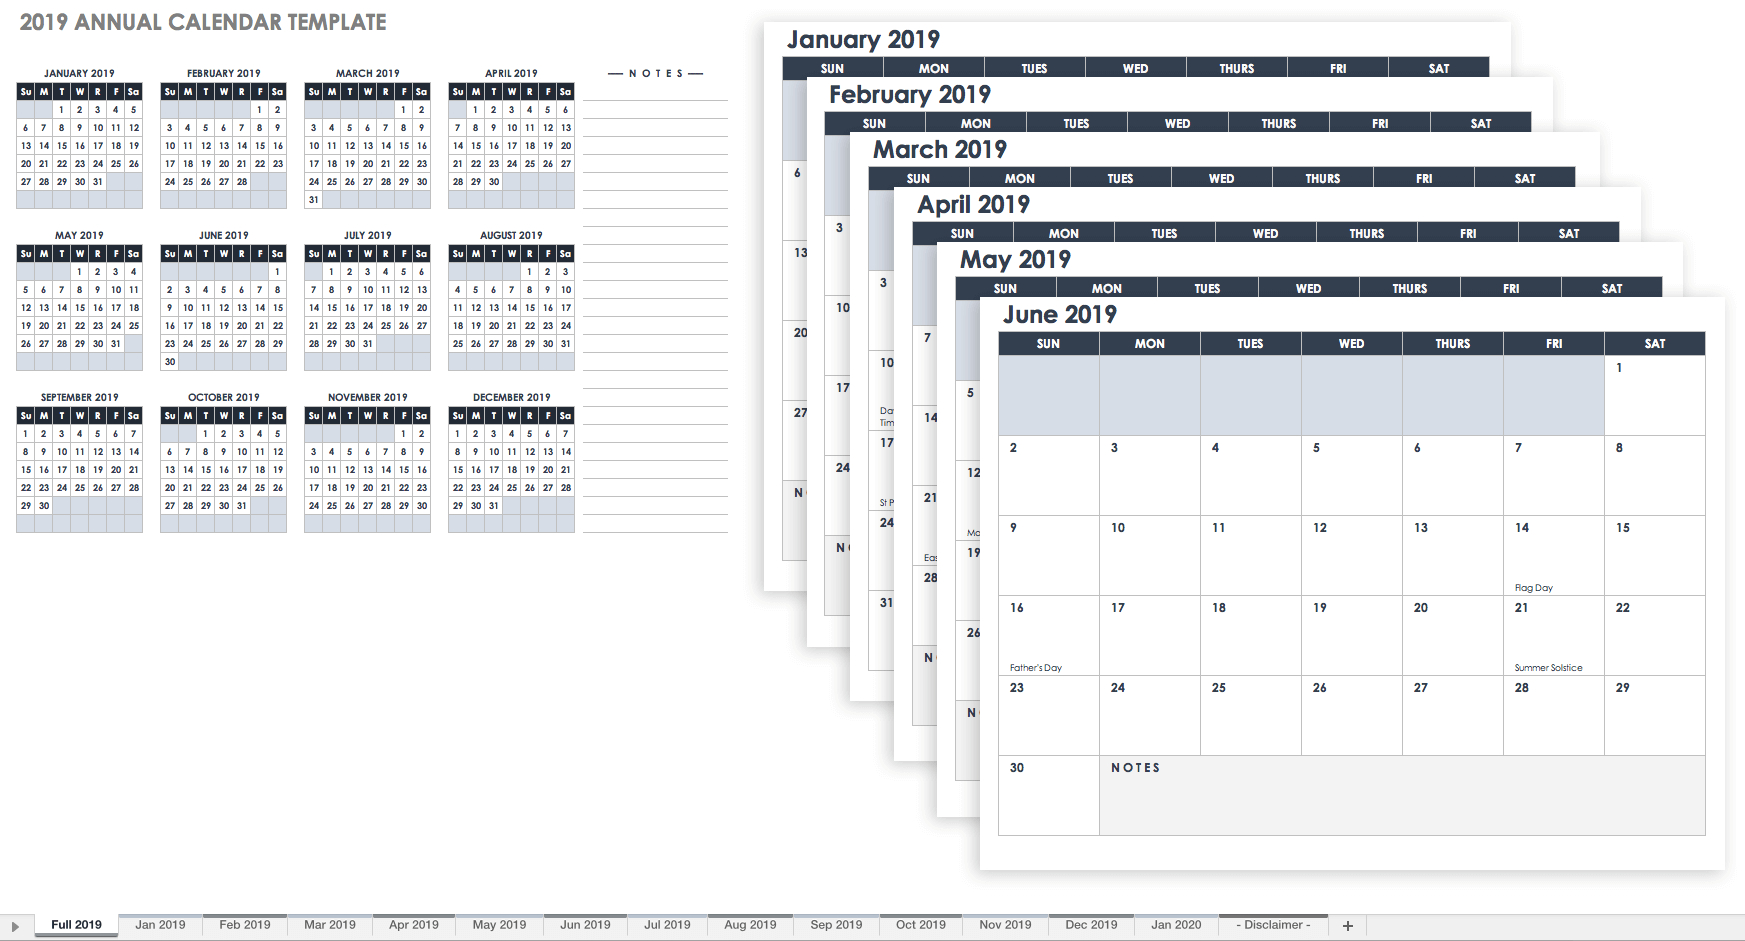 15 Free Monthly Calendar Templates | Smartsheet intended for Template For Calendar By Month